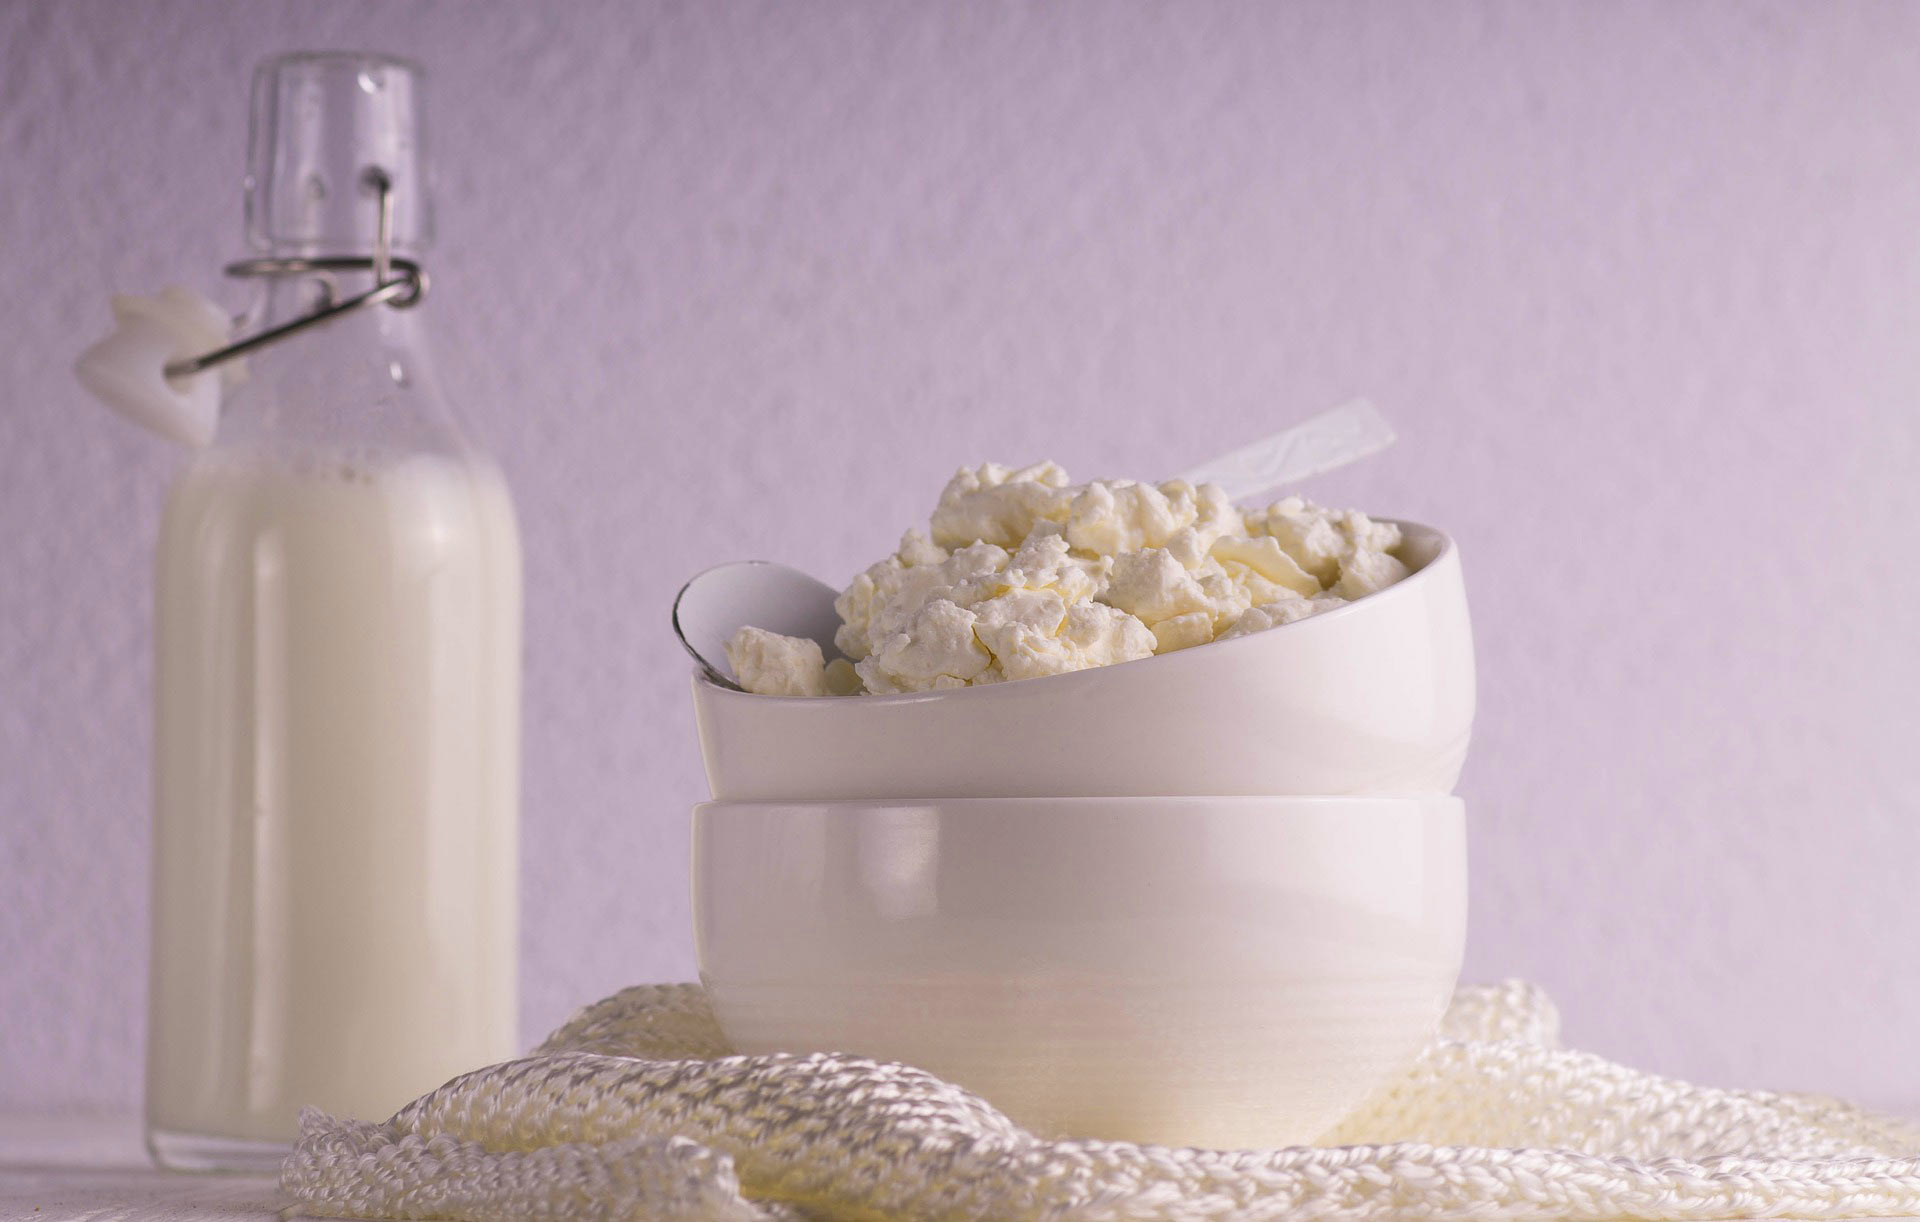 Fantastic Pre Sleep Consumption Of Cottage Cheese Supports Metabolism Interior Design Ideas Clesiryabchikinfo